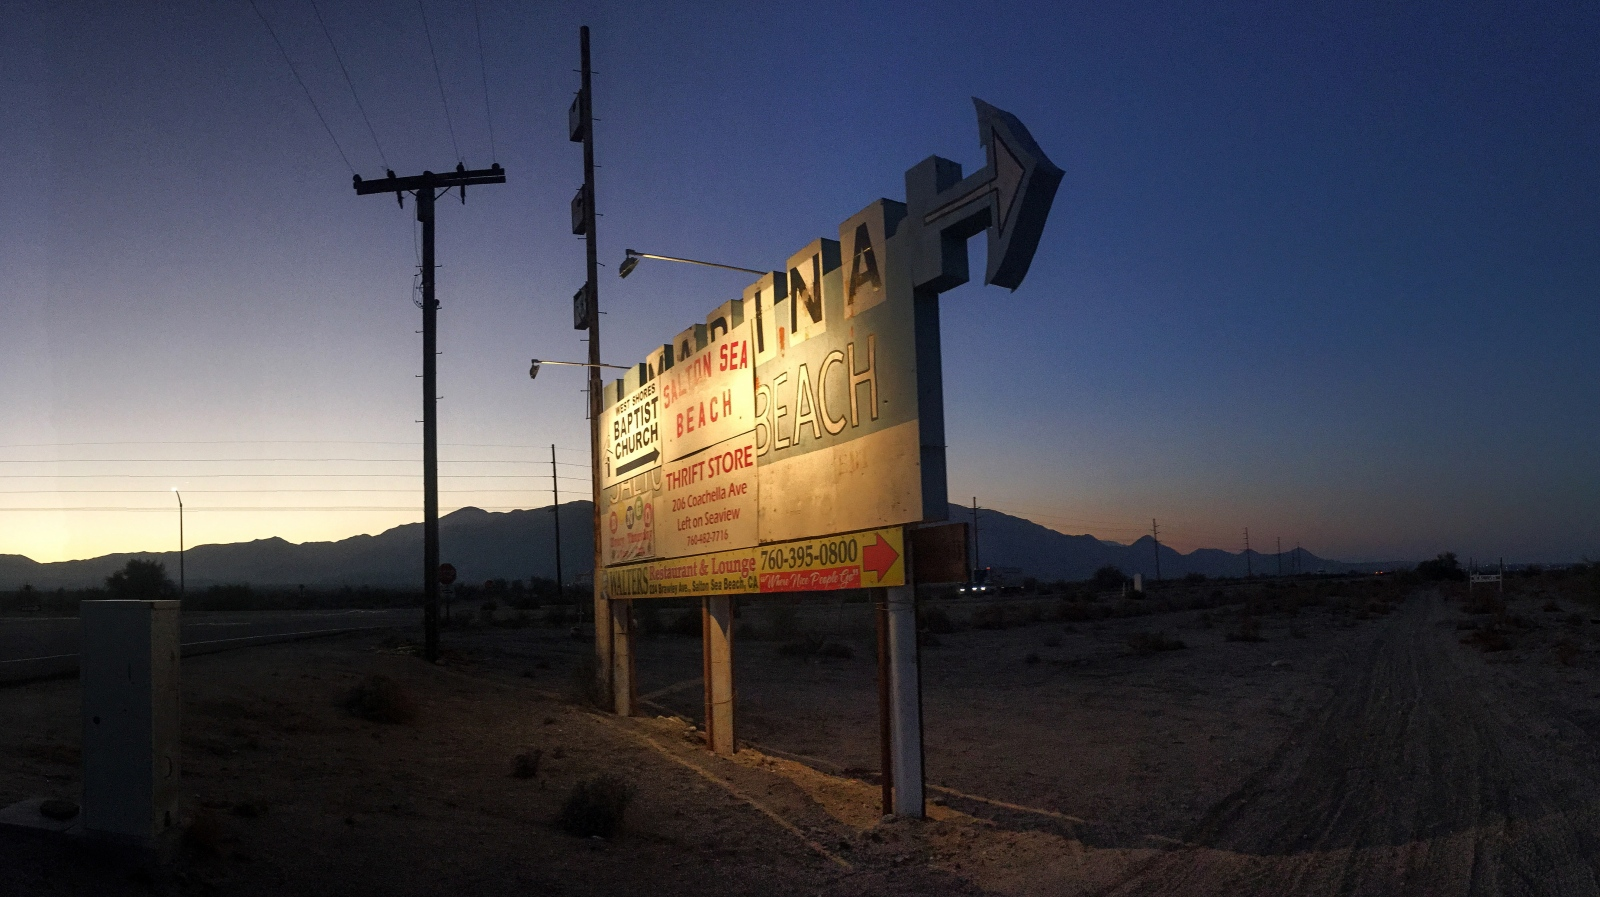 Thermal, CA, Near Salton Sea Beach - A sign posted along the side of highway 86 indicates the way to the now defunct Salton Sea Marina and Salton Sea Beach.